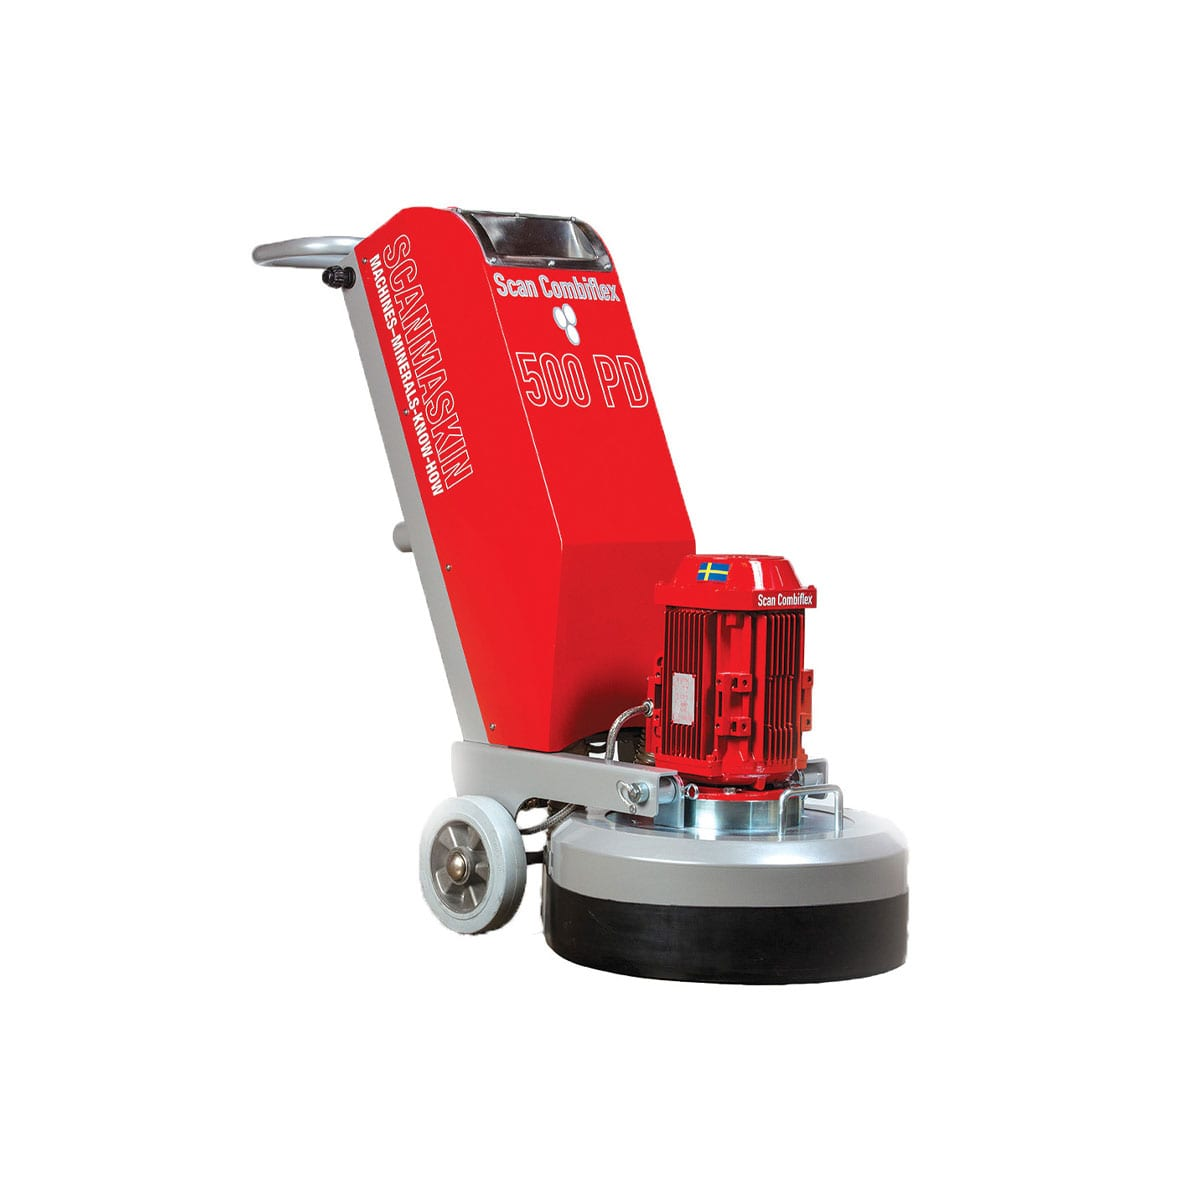 Scanmaskin ScanCombiflex 500 PD Concrete Grinder 230 Volt - Turning Point Supply North Carolina Dealer